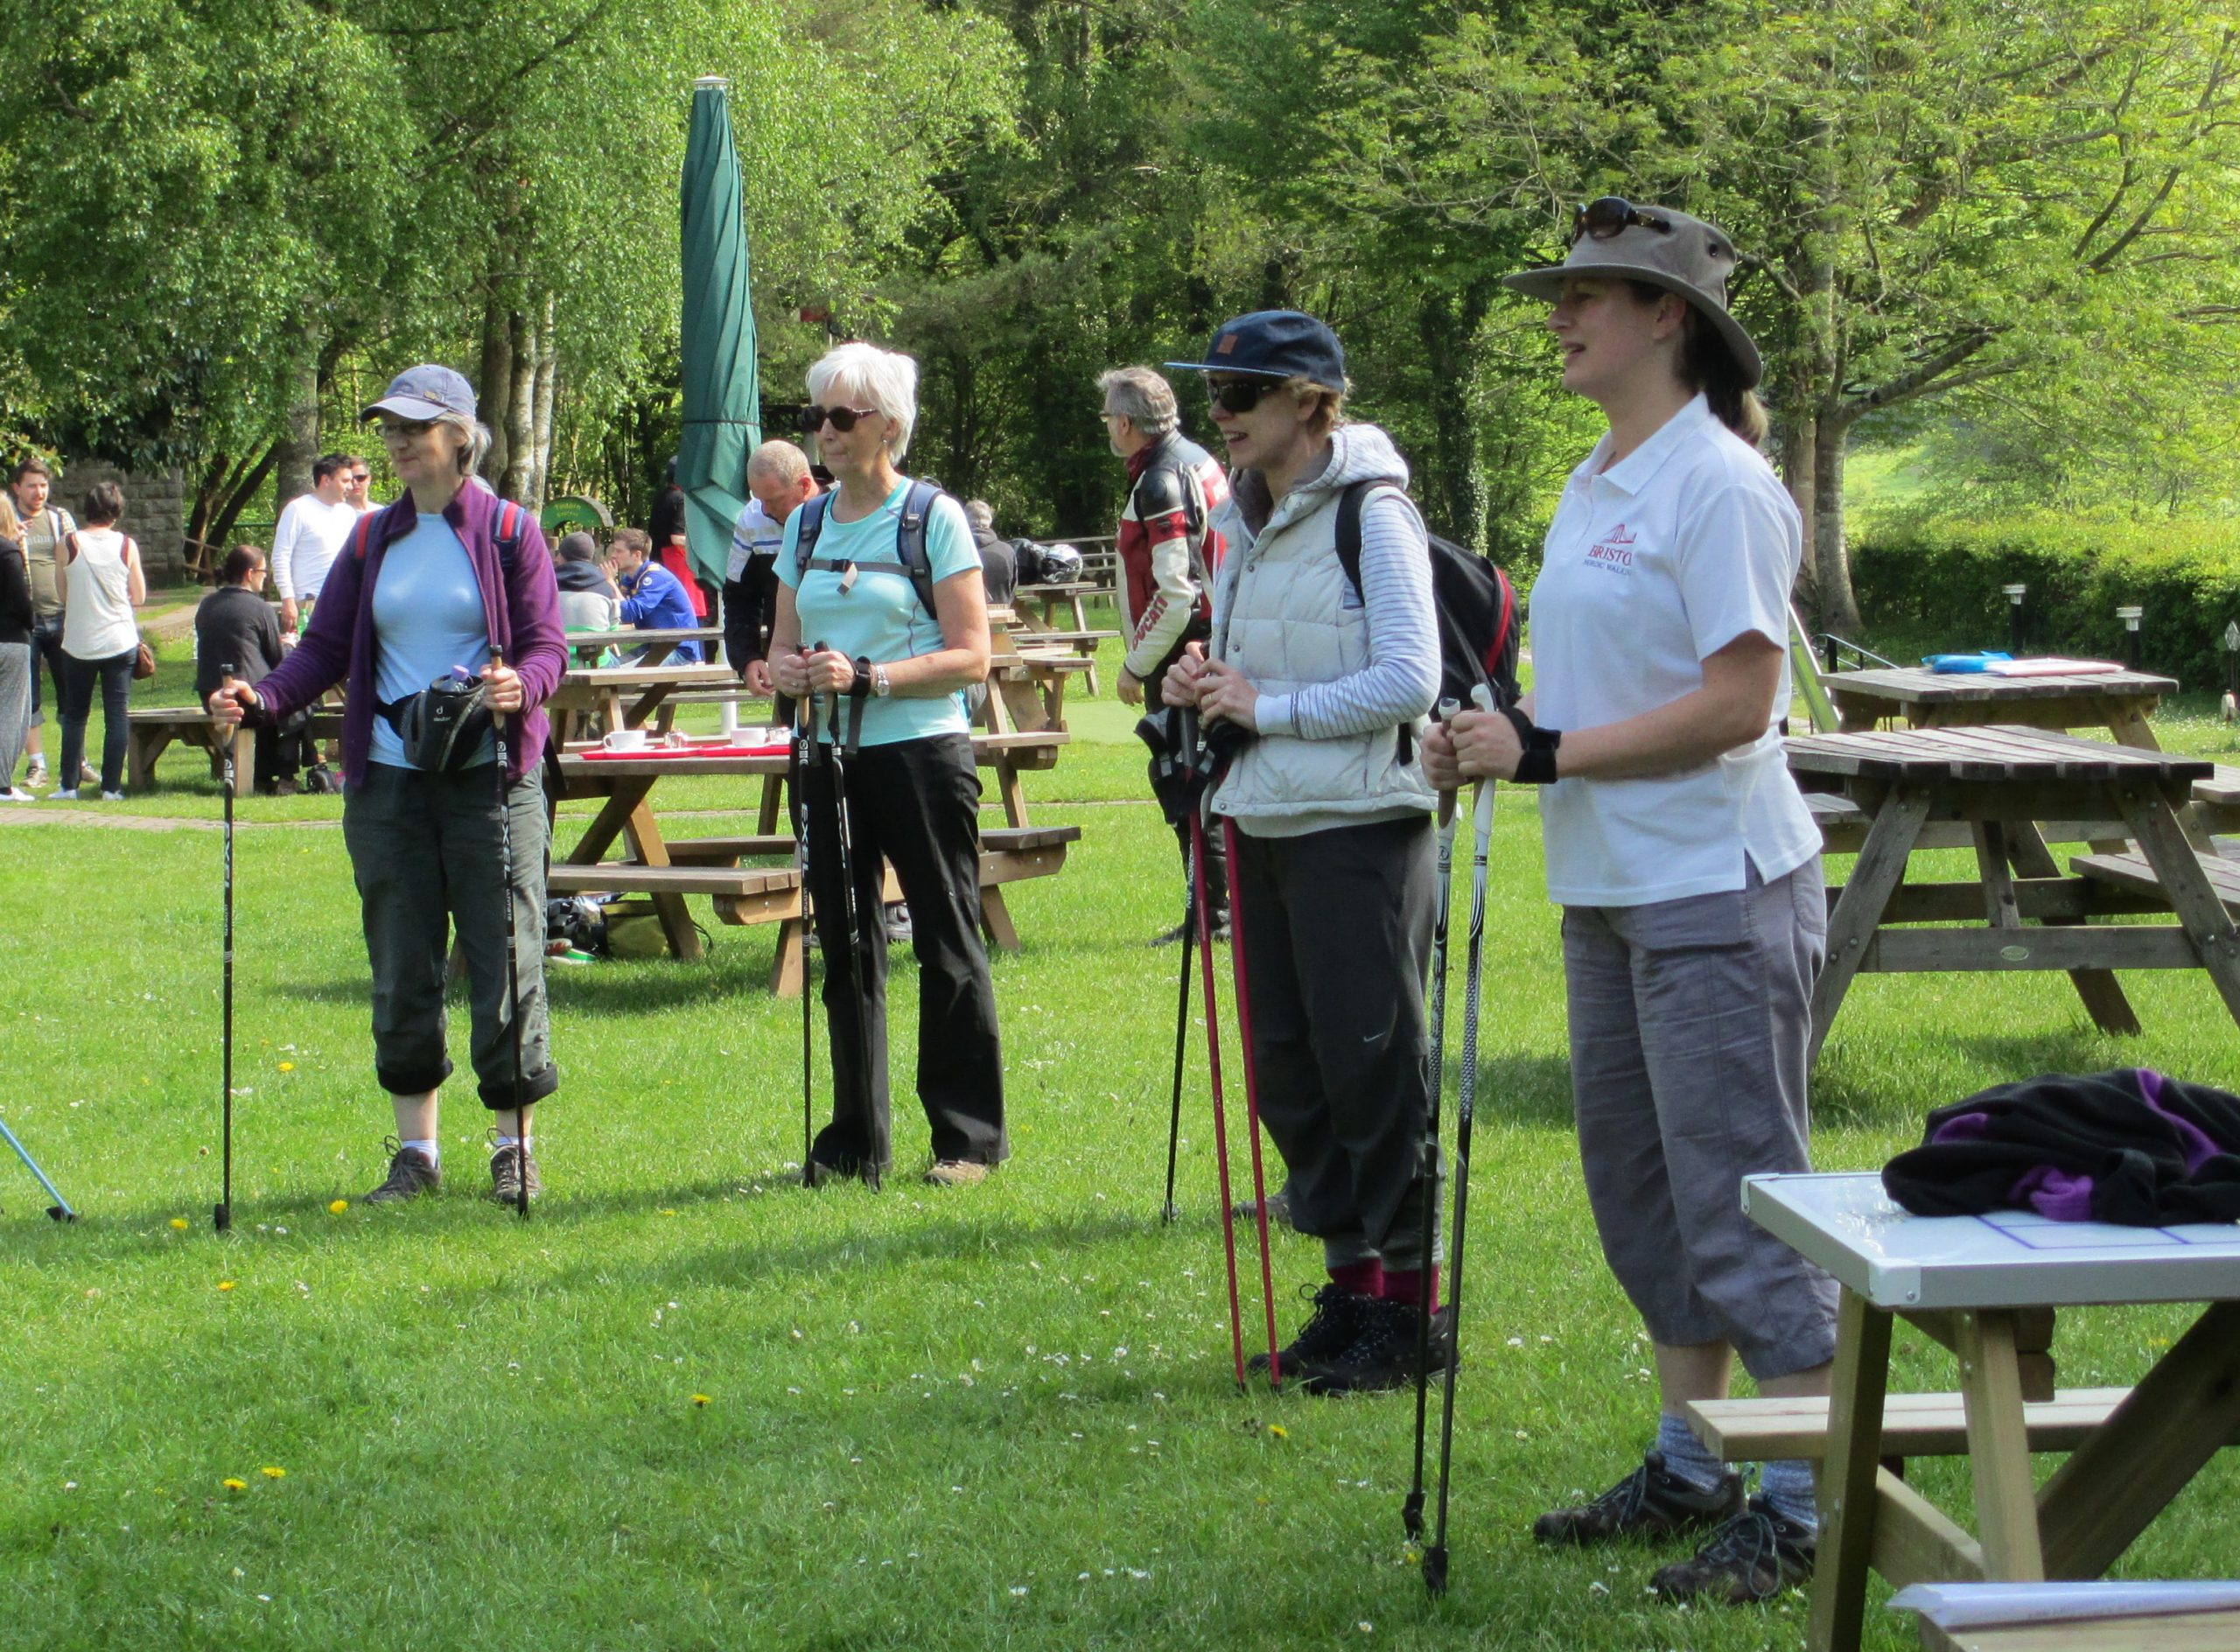 Which Nordic walking pole to buy?